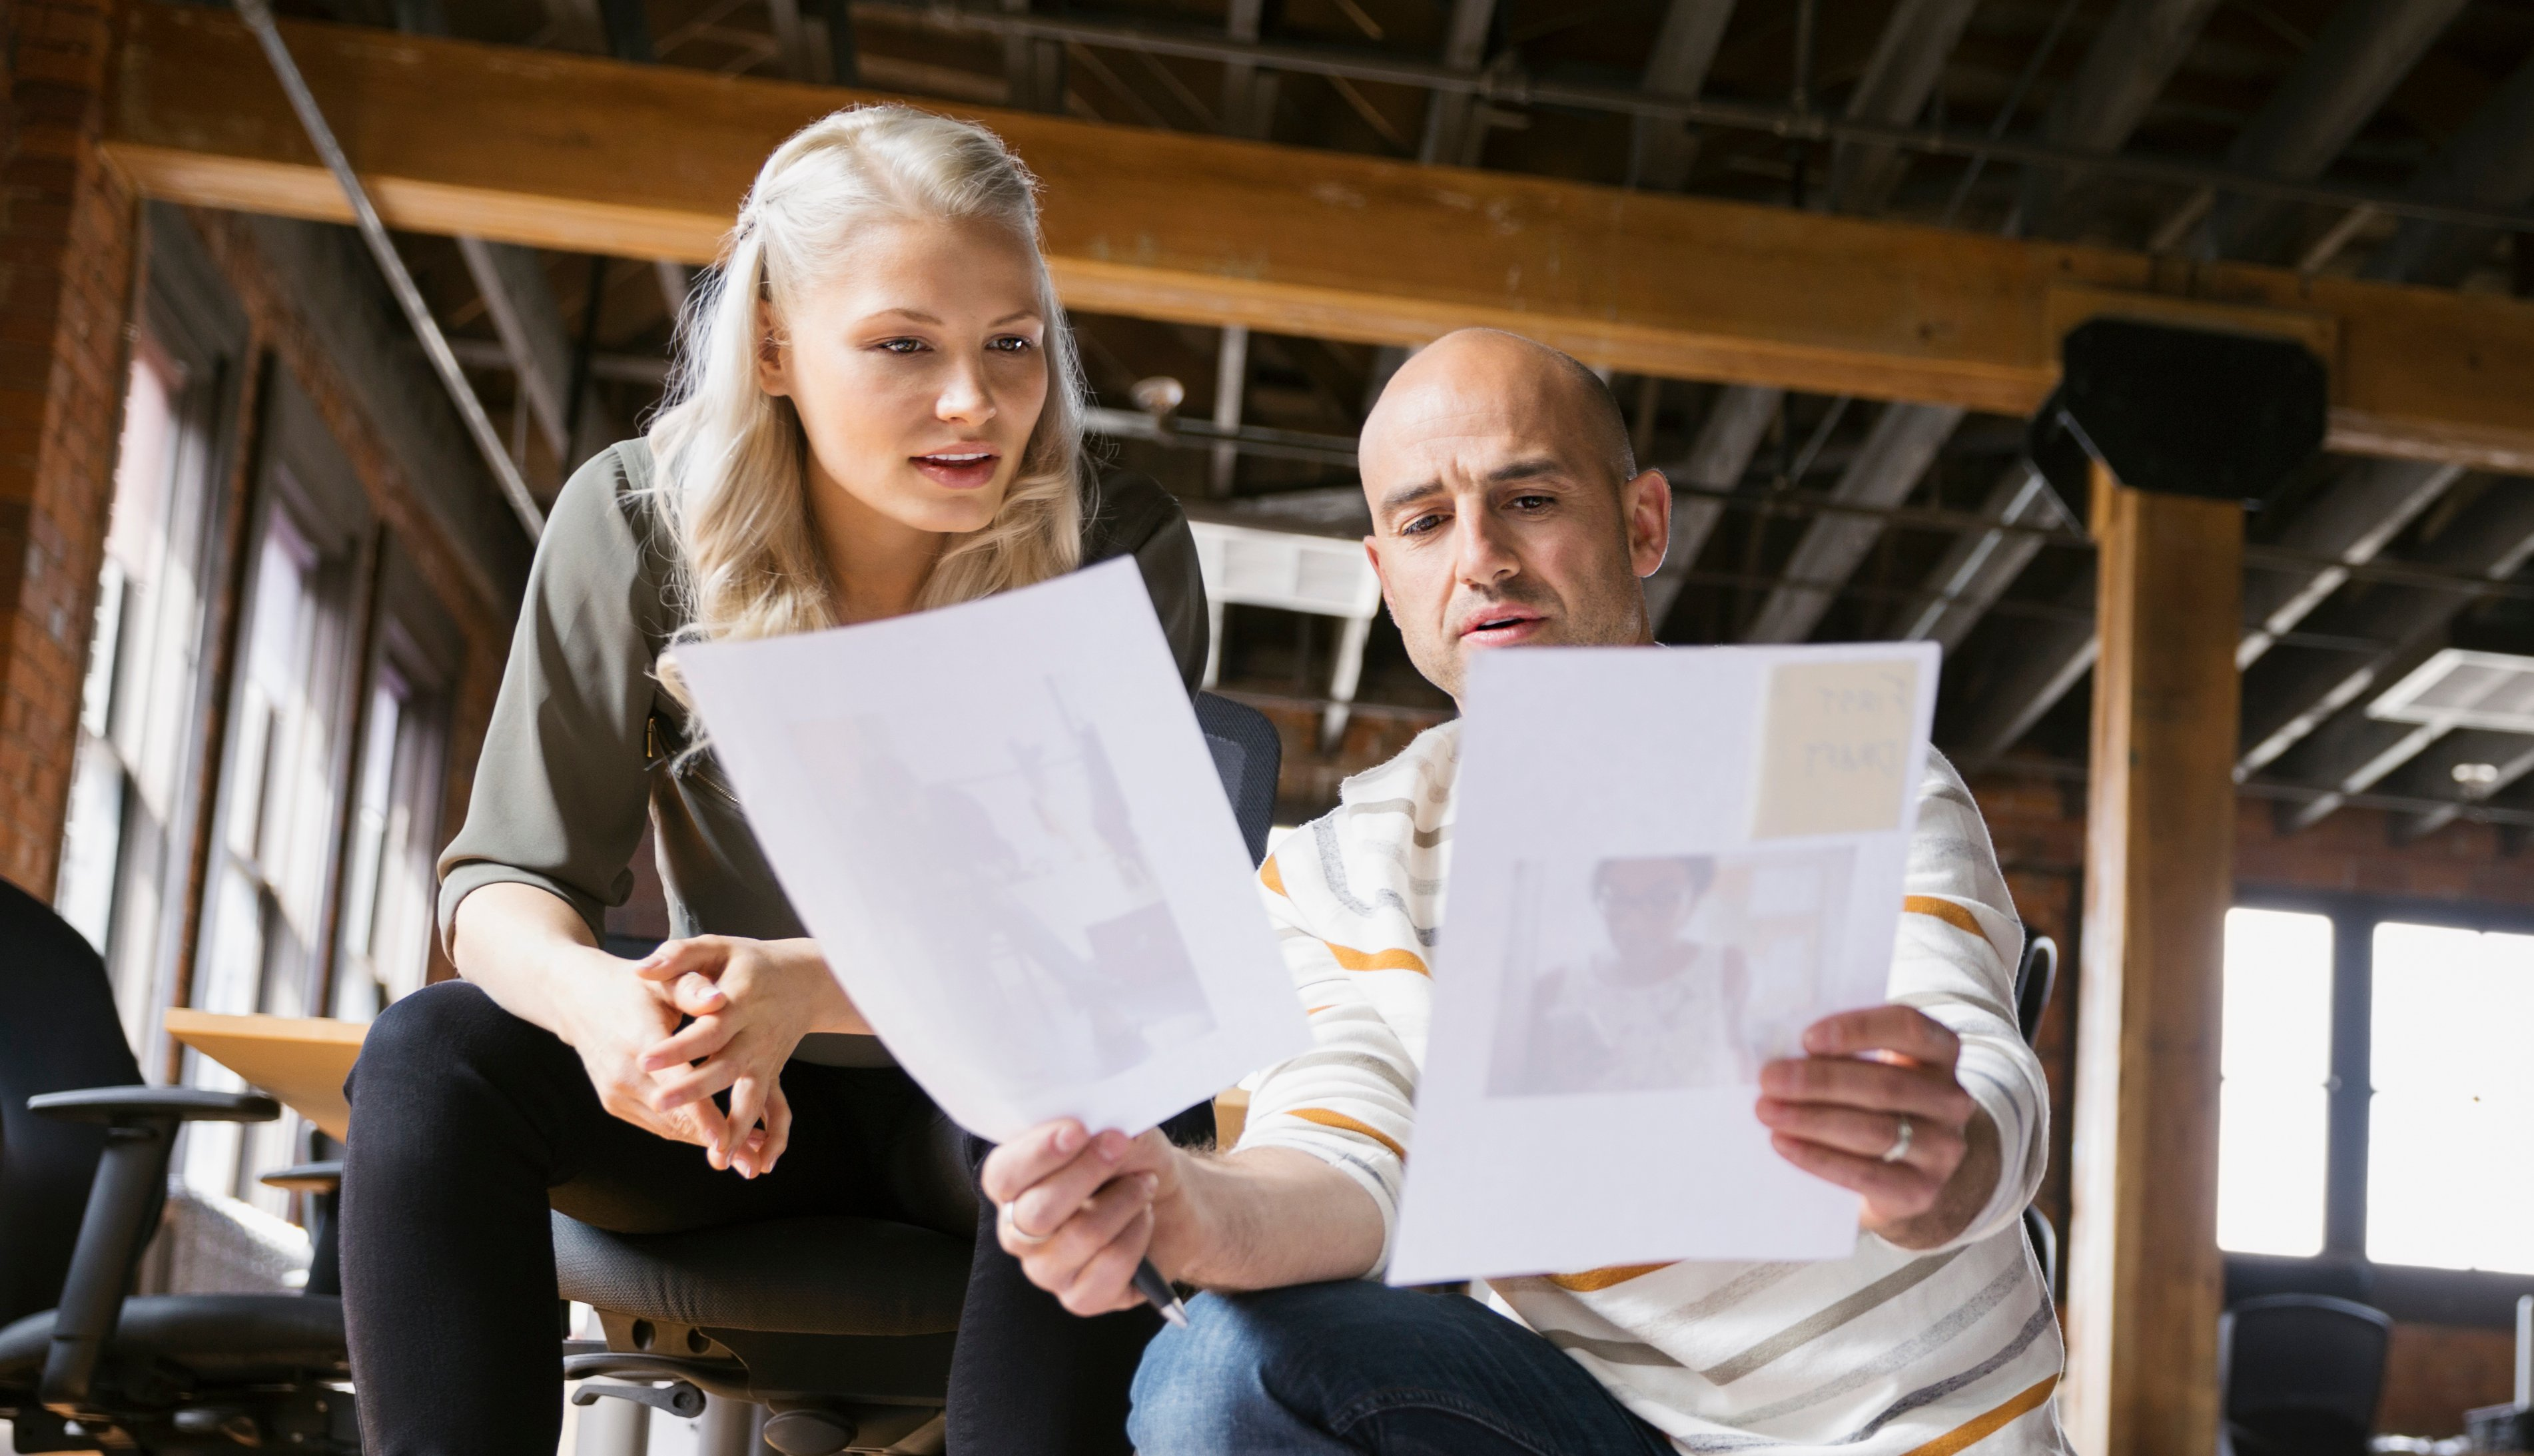 Male and female business people kneeling on the floor at their office with papers scattered around, reviewing proofs